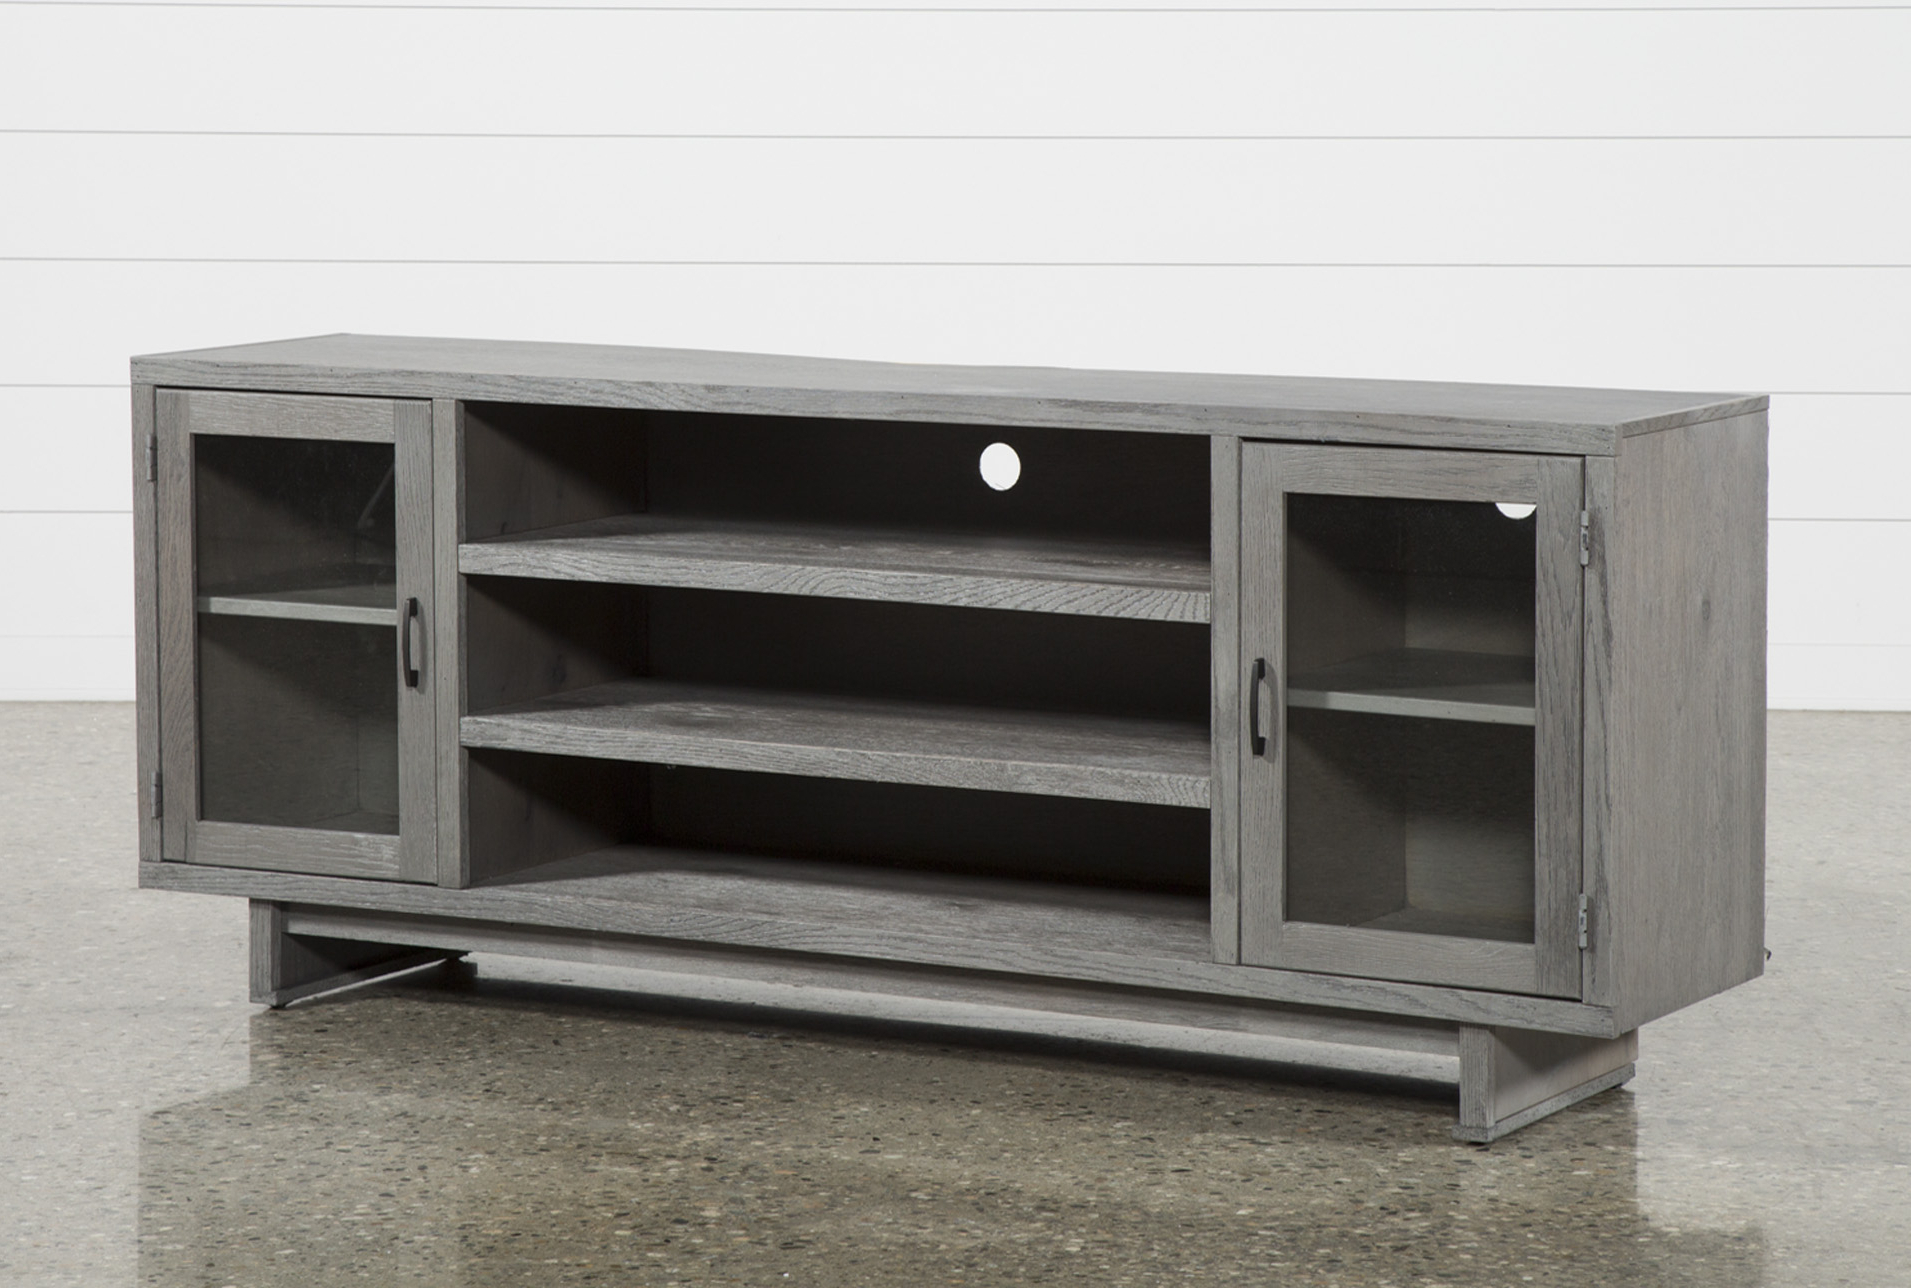 Melrose Titanium 74 Inch Tv Stand, Grey | House | Pinterest With Sinclair Grey 54 Inch Tv Stands (View 5 of 20)